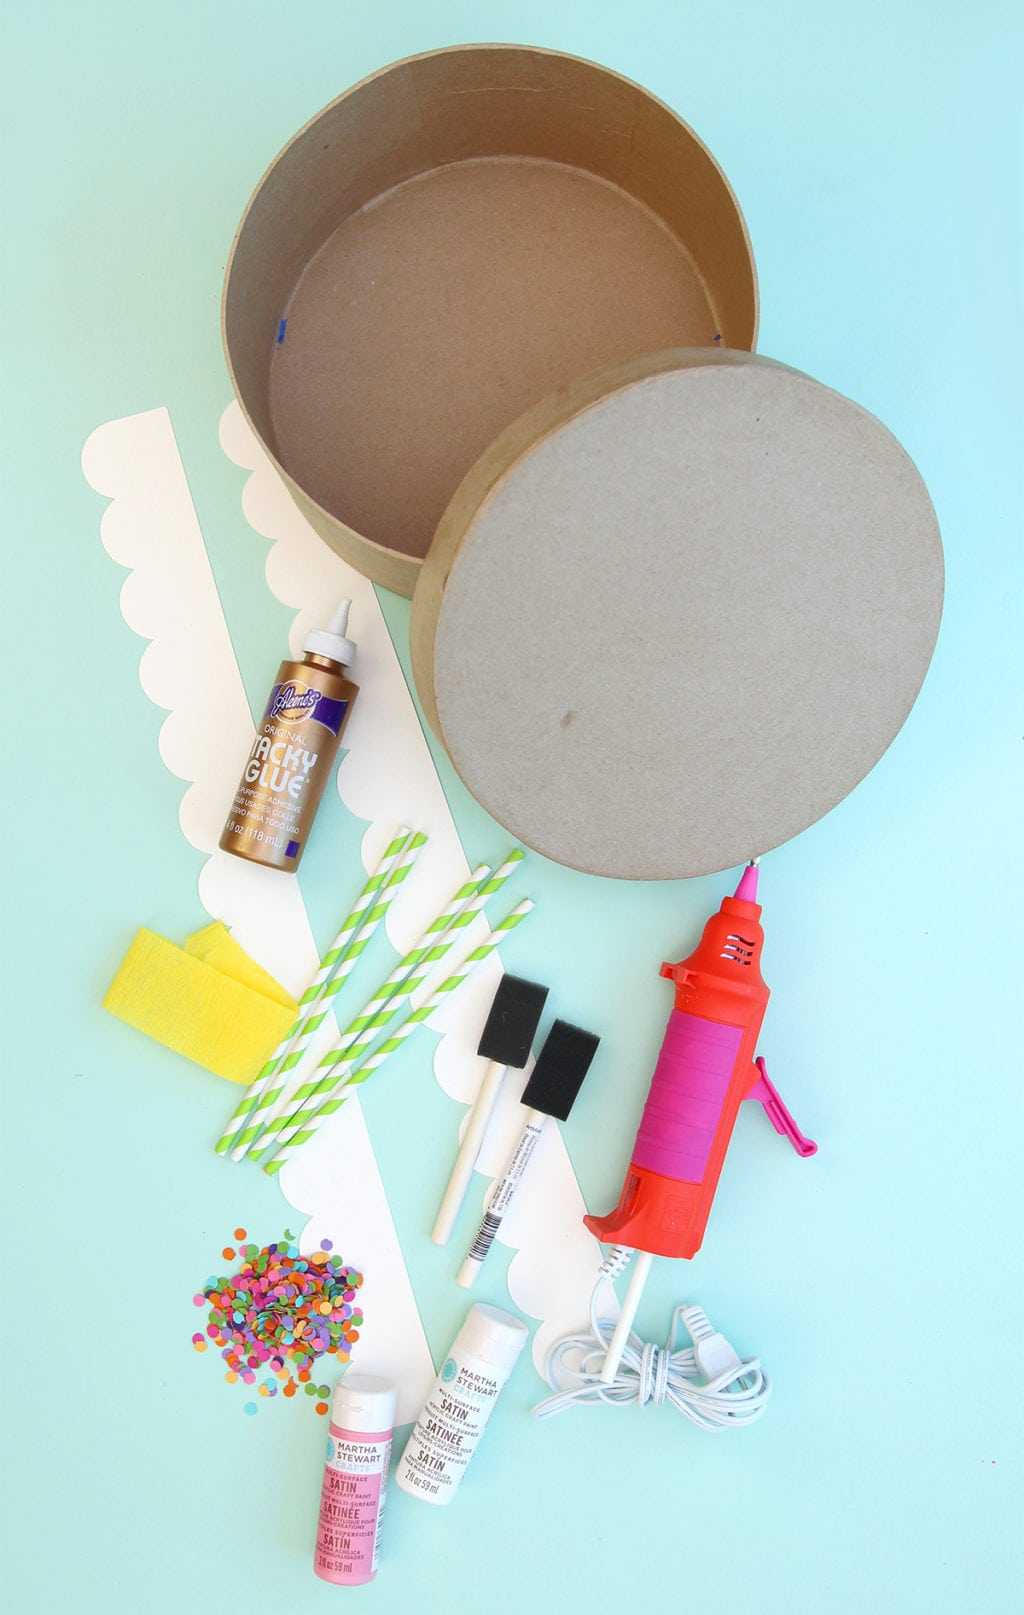 Create your own party out of paper. Use a paper mache box to create a DIY birthday party in a box using simple supplies and fill it up with a few birthday treats